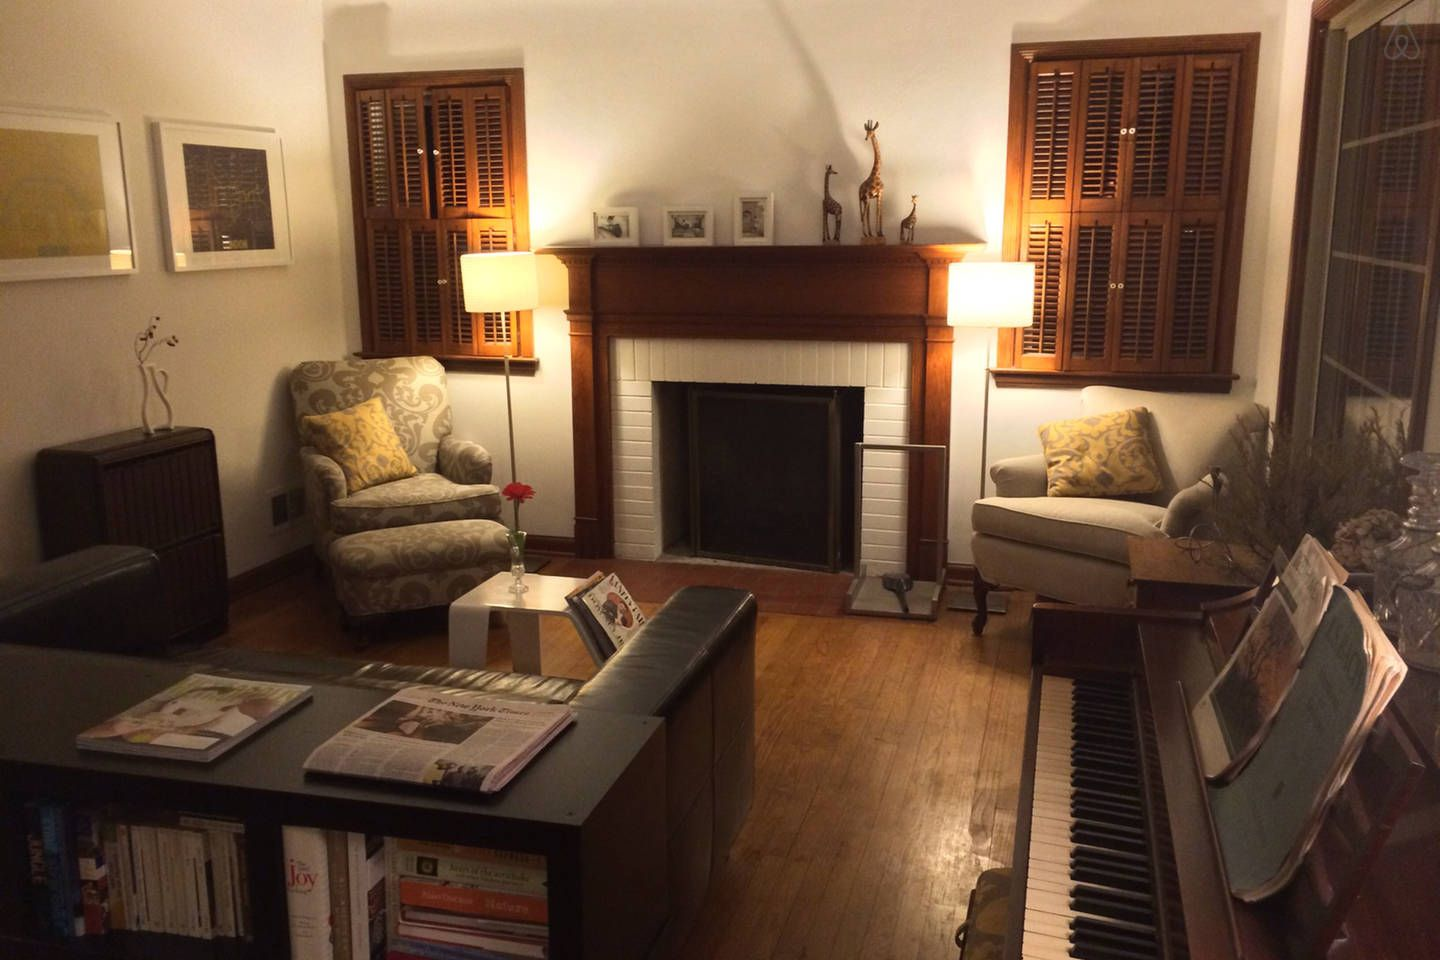 1930s bungalow, Lower Burns Park - vacation rental in Ann Arbor